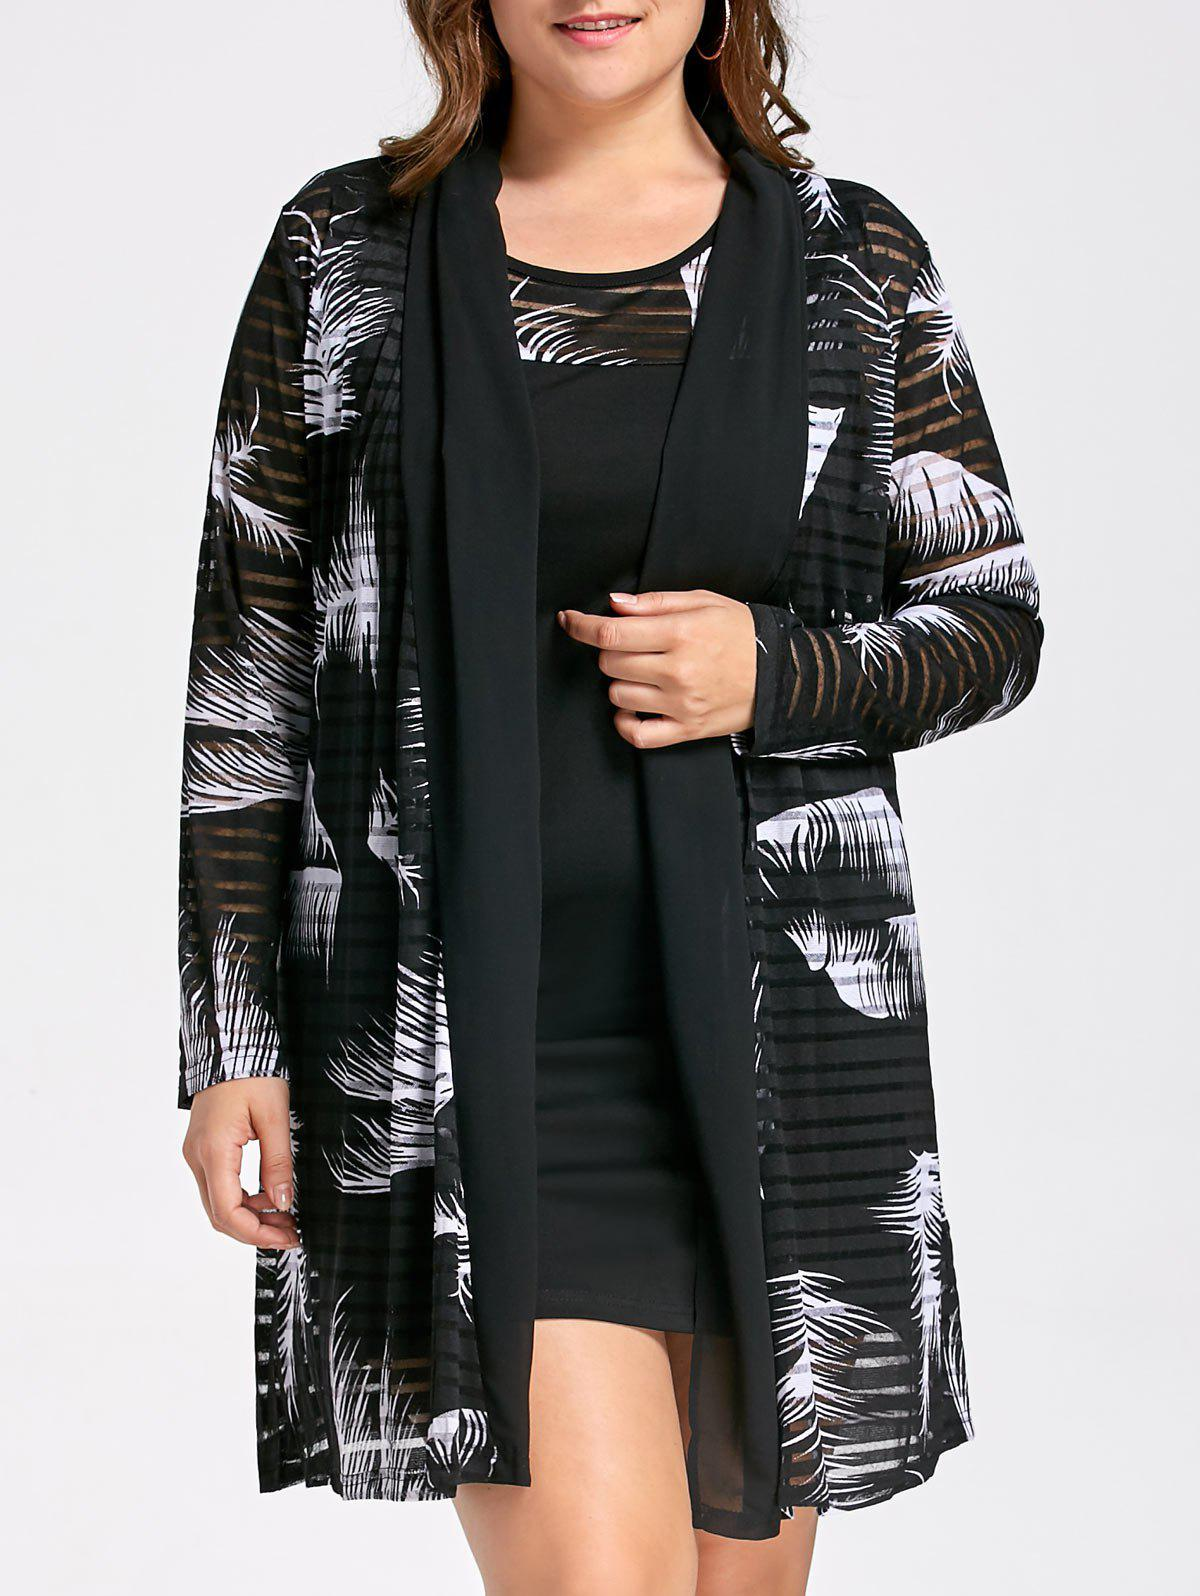 Plus Size Tank Dress with Mesh Long Sheer CardiganWOMEN<br><br>Size: 3XL; Color: WHITE AND BLACK; Style: Casual; Material: Cotton Blend,Polyester; Silhouette: Bodycon; Dresses Length: Mini; Neckline: Round Collar; Sleeve Length: Sleeveless; Pattern Type: Plant,Print; With Belt: No; Season: Fall,Spring; Weight: 0.5500kg; Package Contents: 1 x Dress 1 x Cardigan;